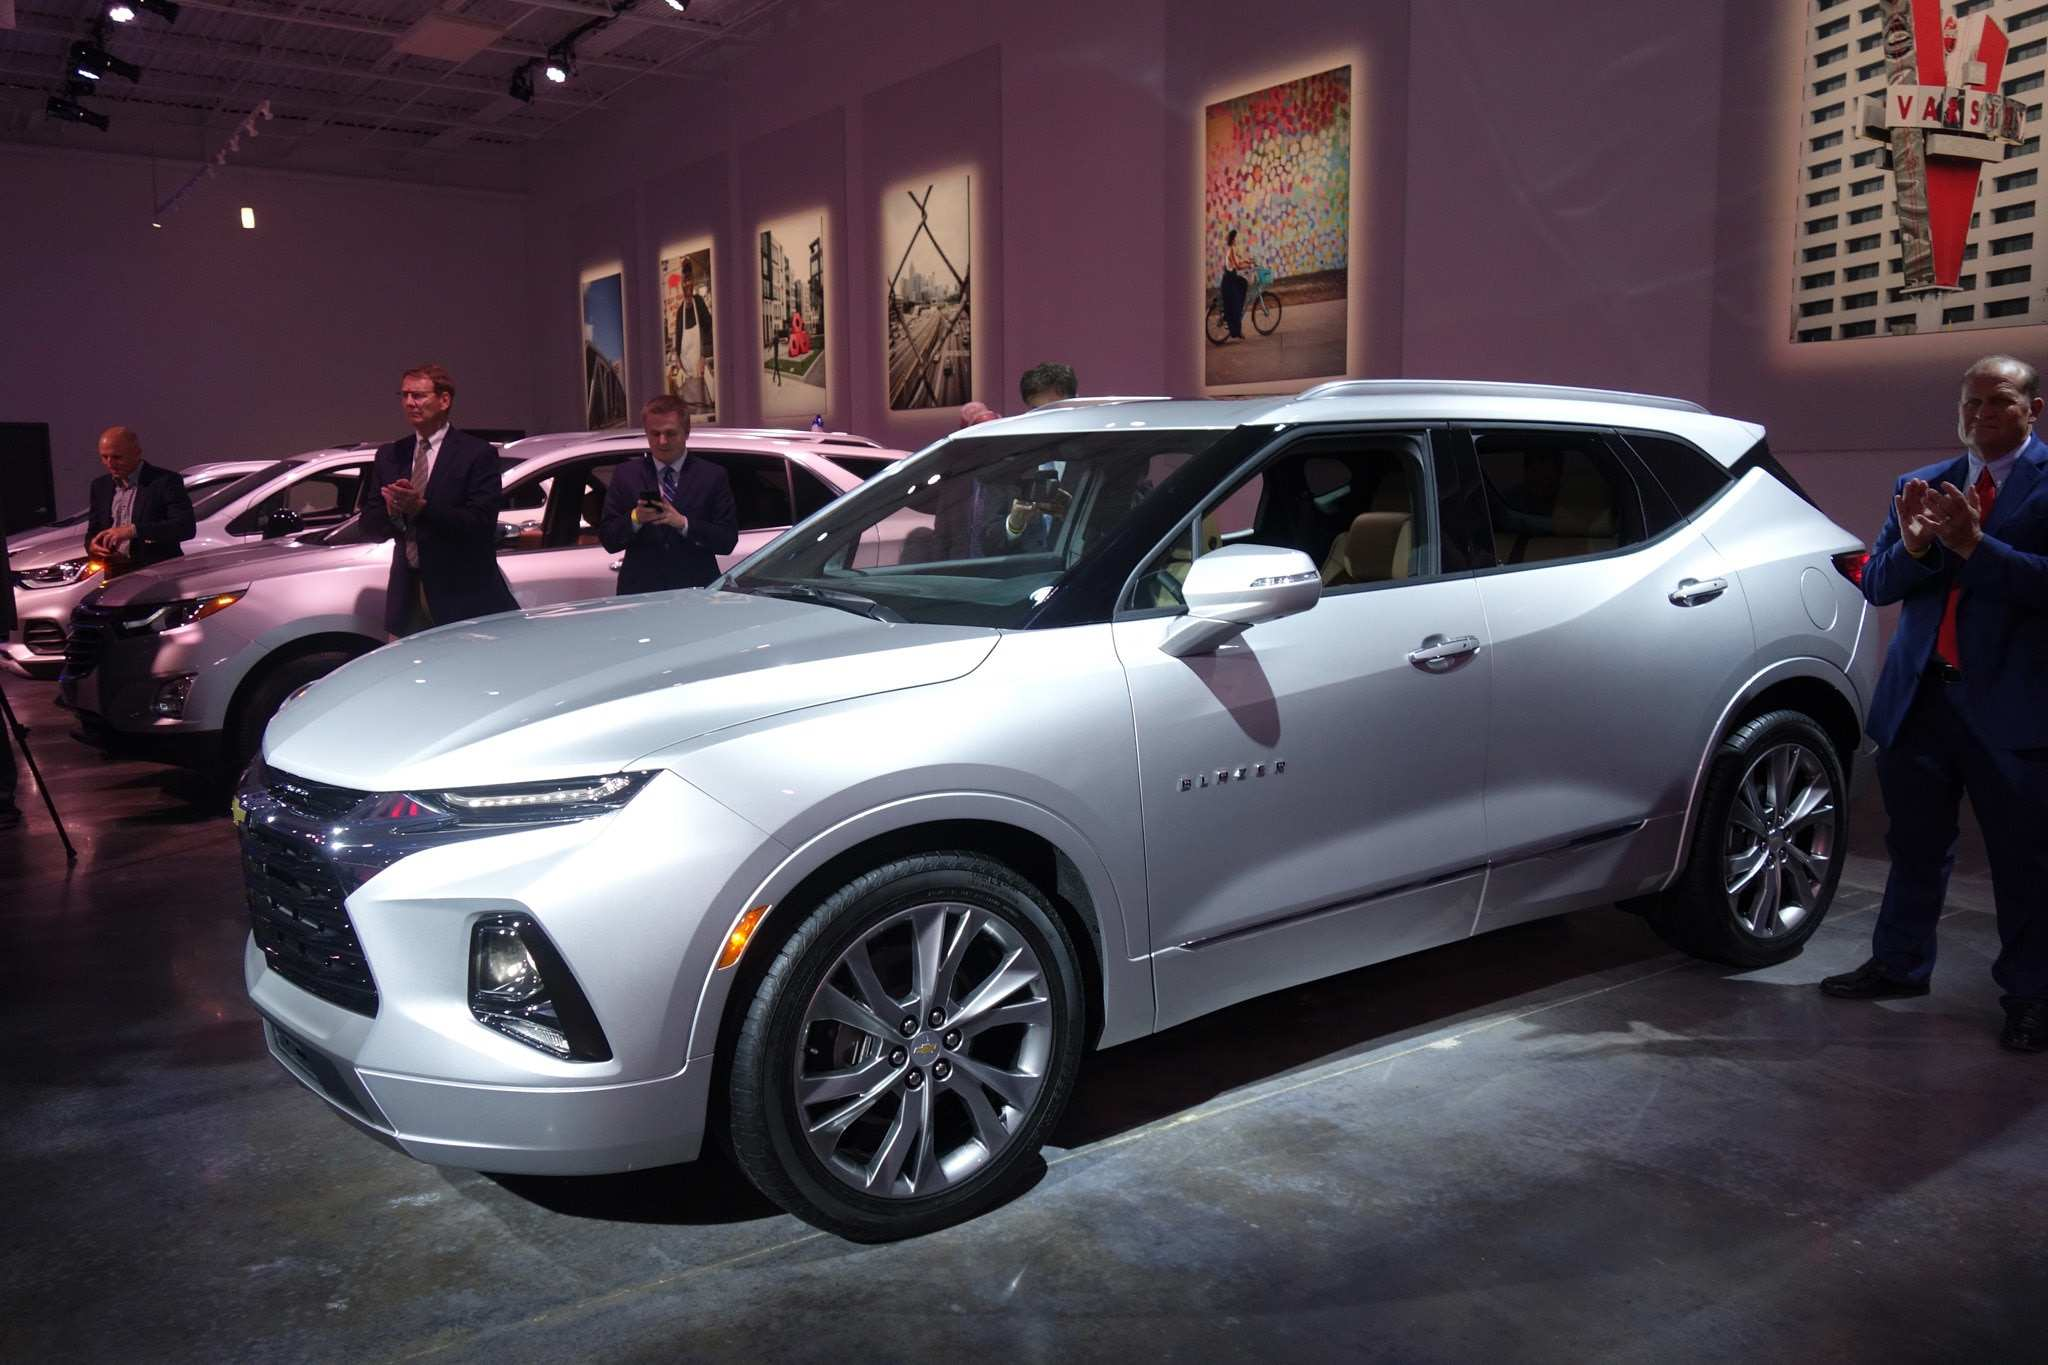 97 The Best 2019 Chevy K5 Blazer Price And Release Date